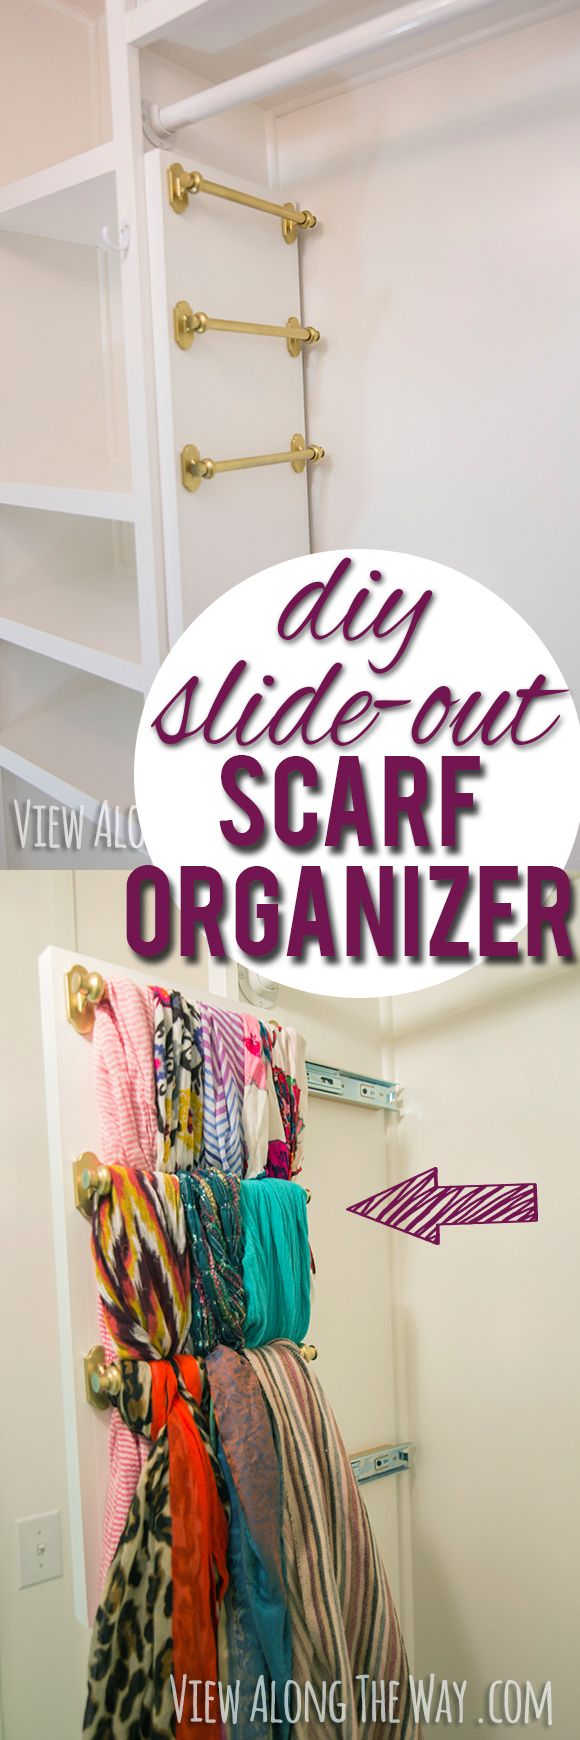 I am SO doing this, in my master and front closets! Every girl needs this! Brilliant way to hang your scarves - it slides out!